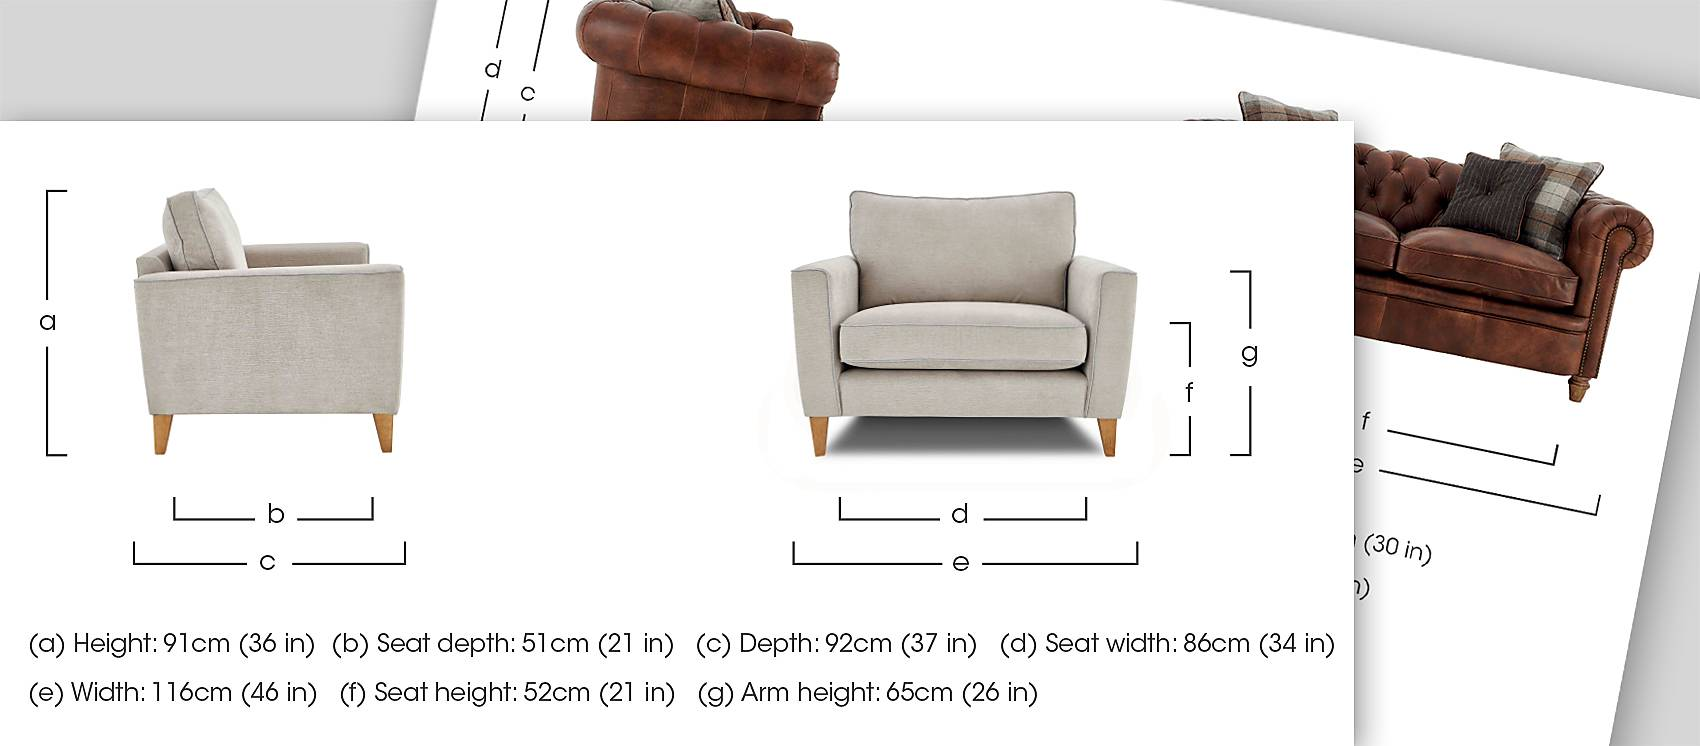 Measuring furniture guide